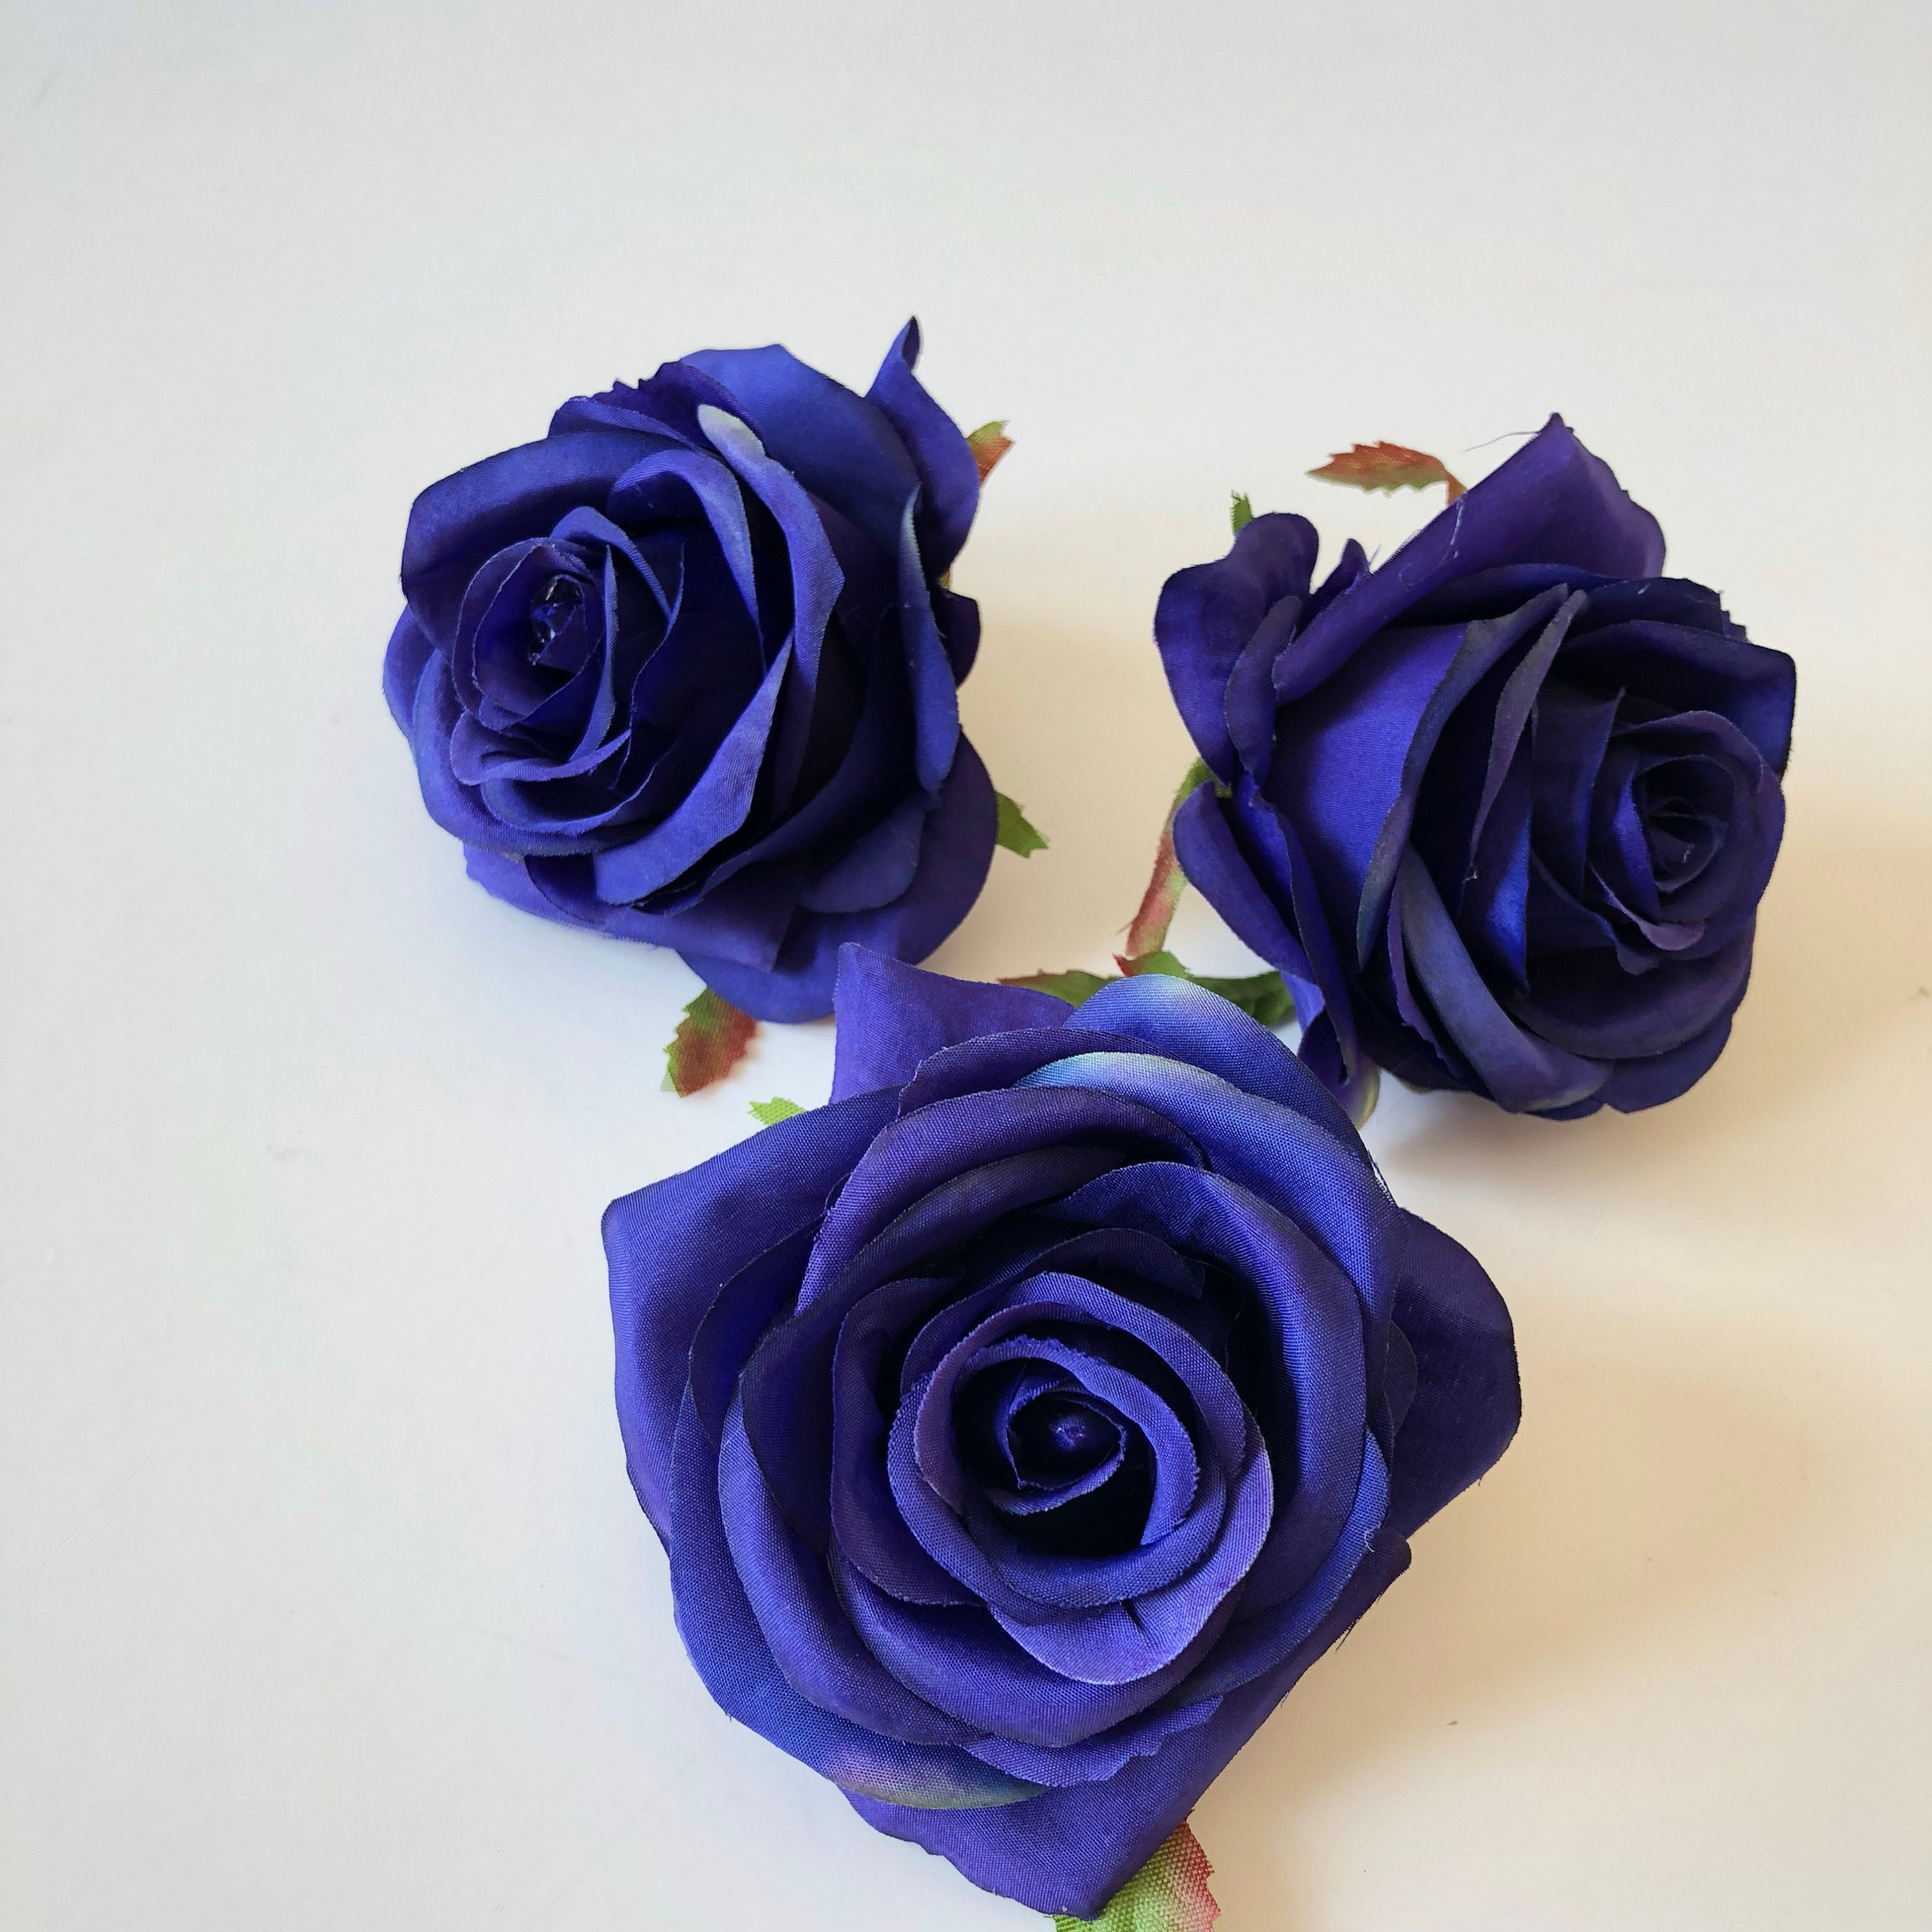 3 Pieces Navy Silk Rose Heads Artificial Roses Rose Head Etsy